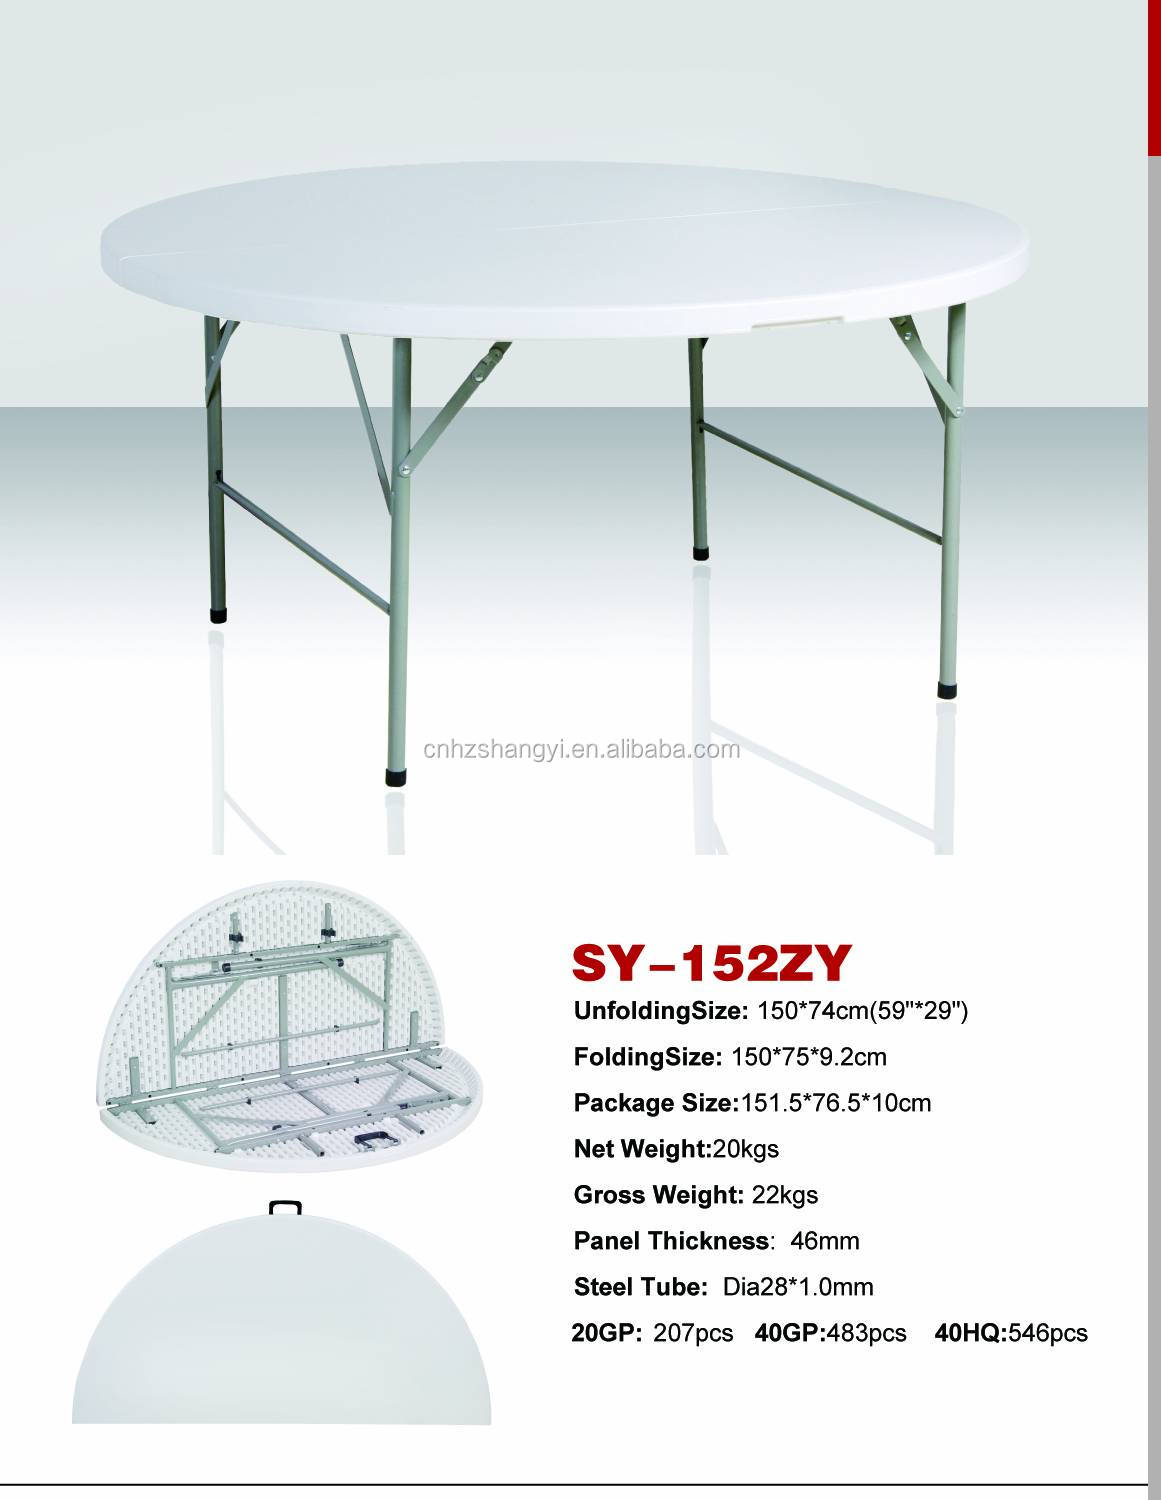 sy 152zy 2ft 3ft 4ft 5ft 6ft Round Folding Table And Chair Buy